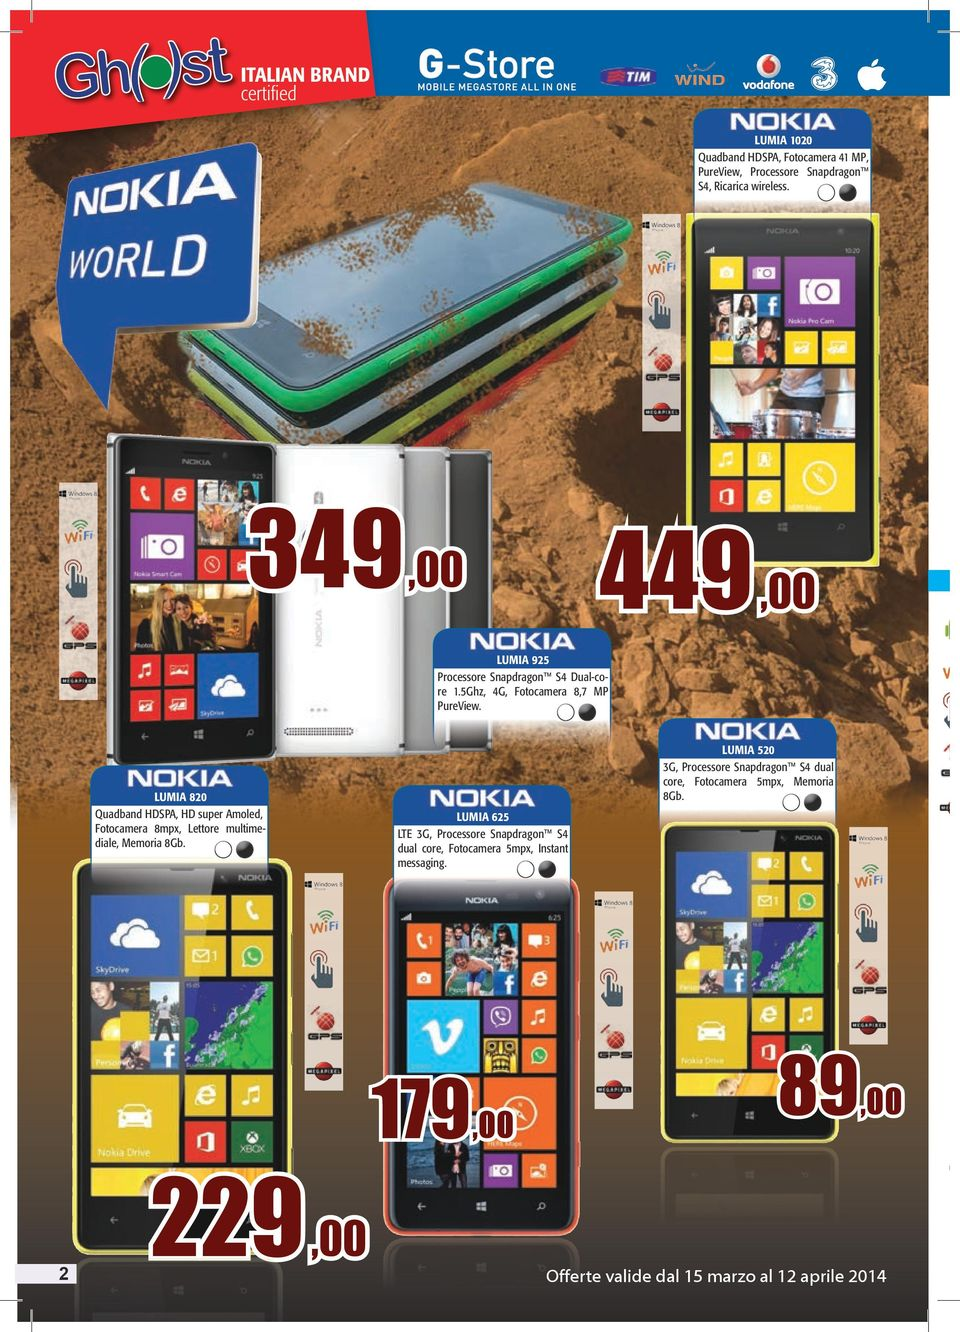 LUMIA 820 Quadband HDSPA, HD super Amoled, Fotocamera 8mpx, Lettore multimediale, Memoria 8Gb.